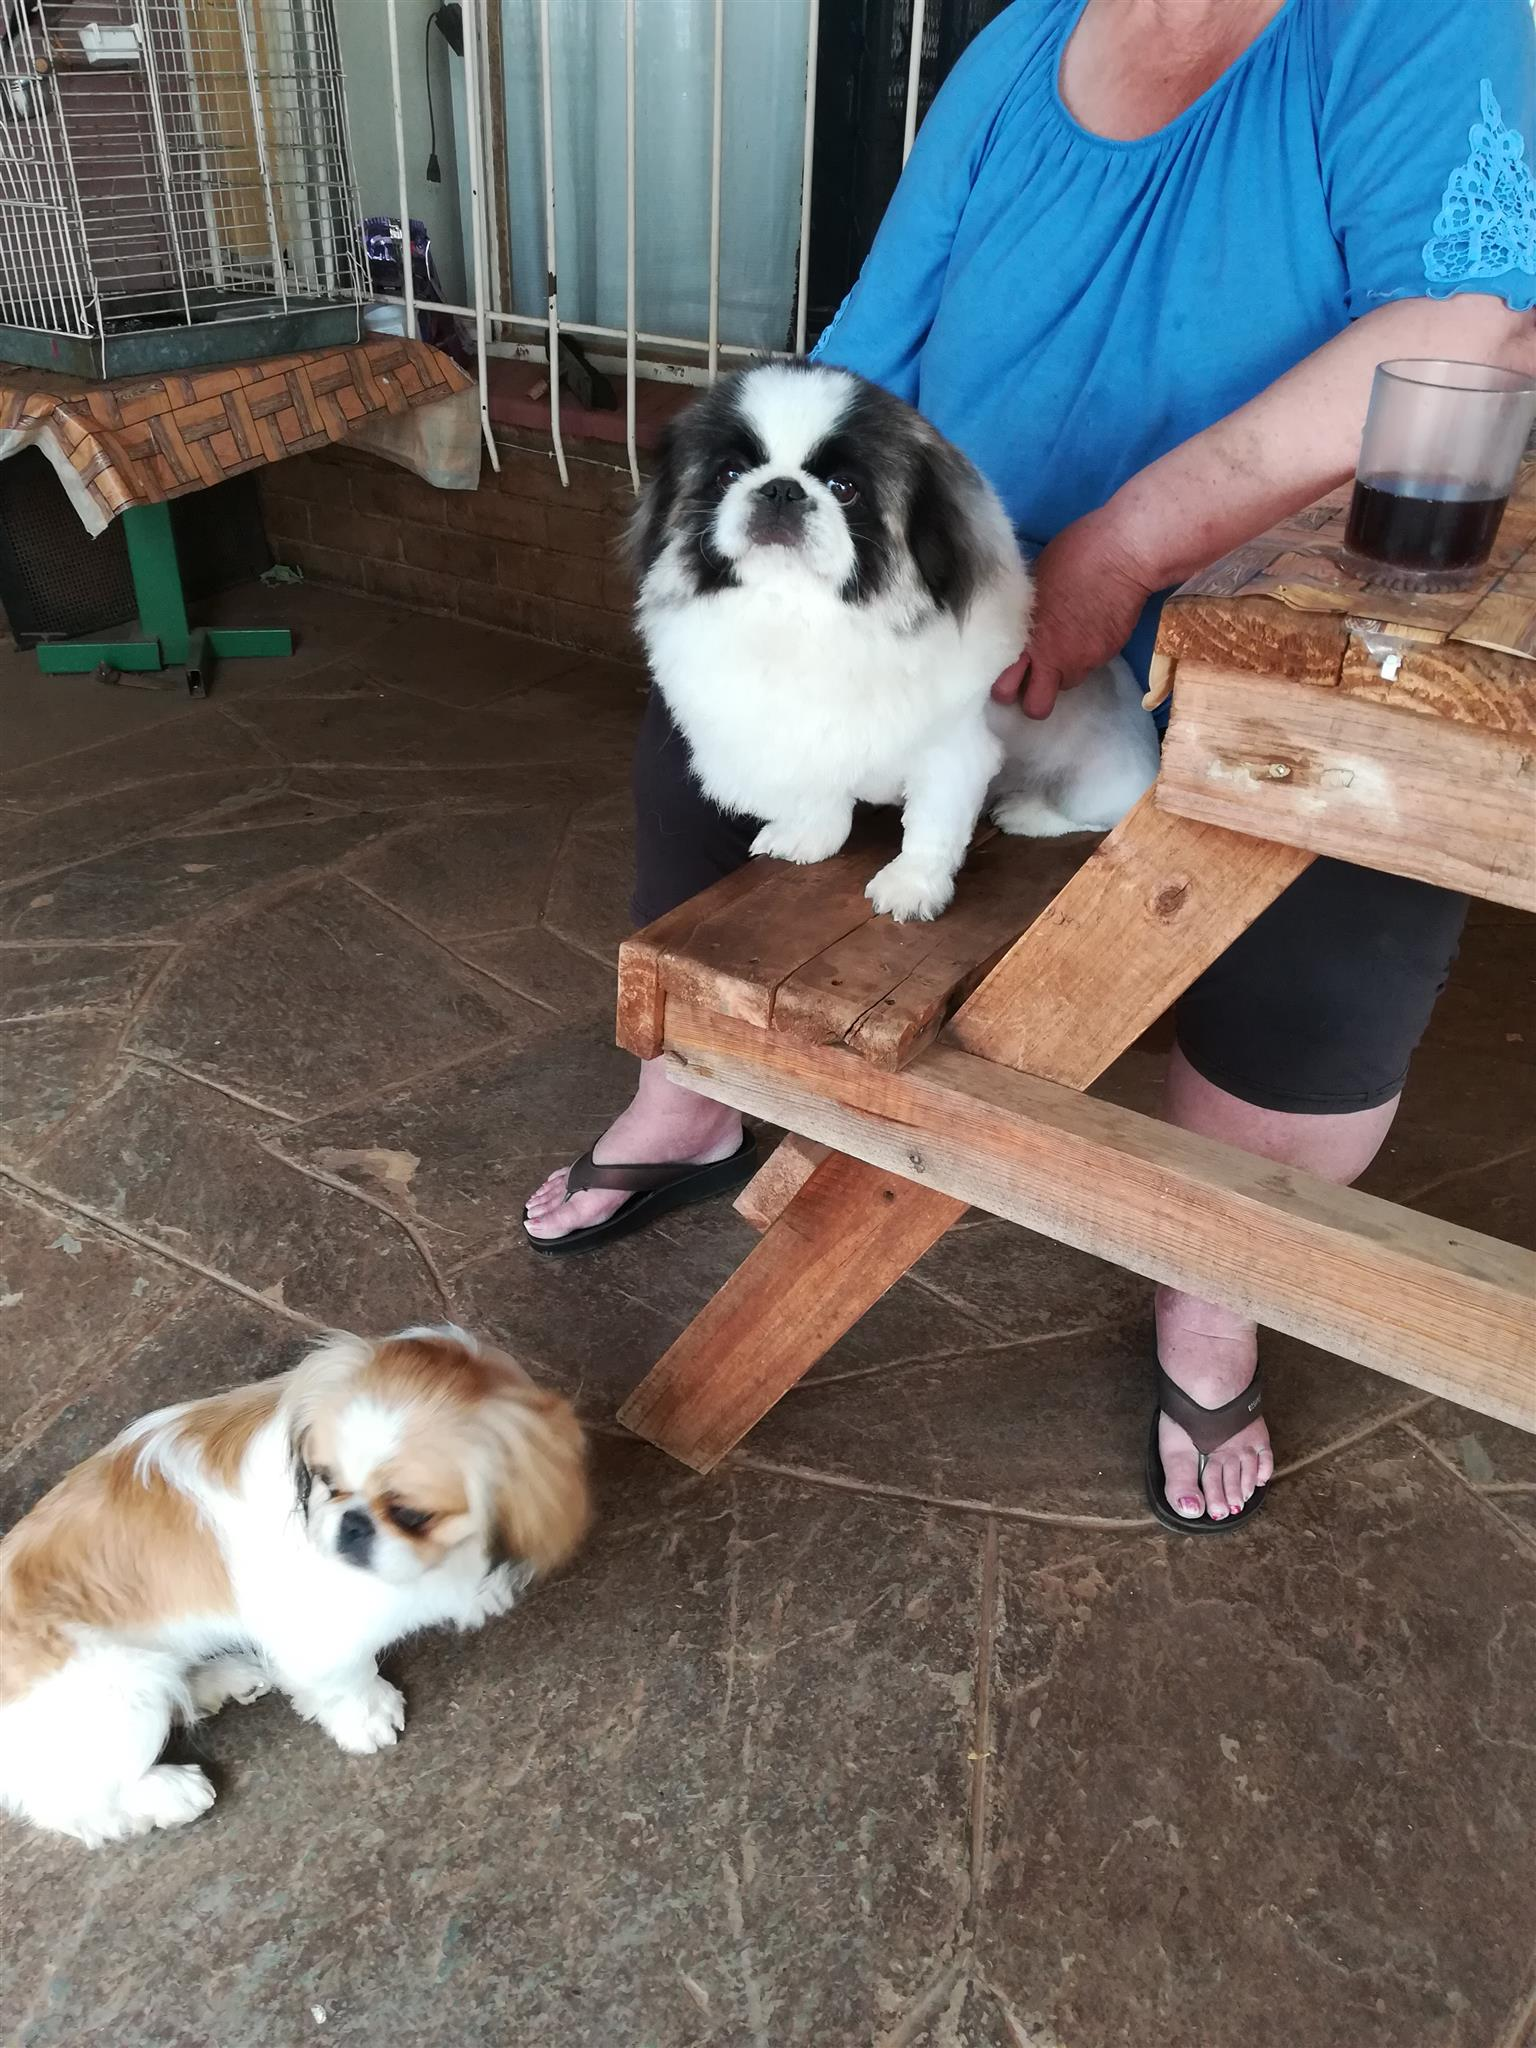 Pekingese puppies (adorable).Nine weeks old. Inoculated, ready to go. Two males,left.